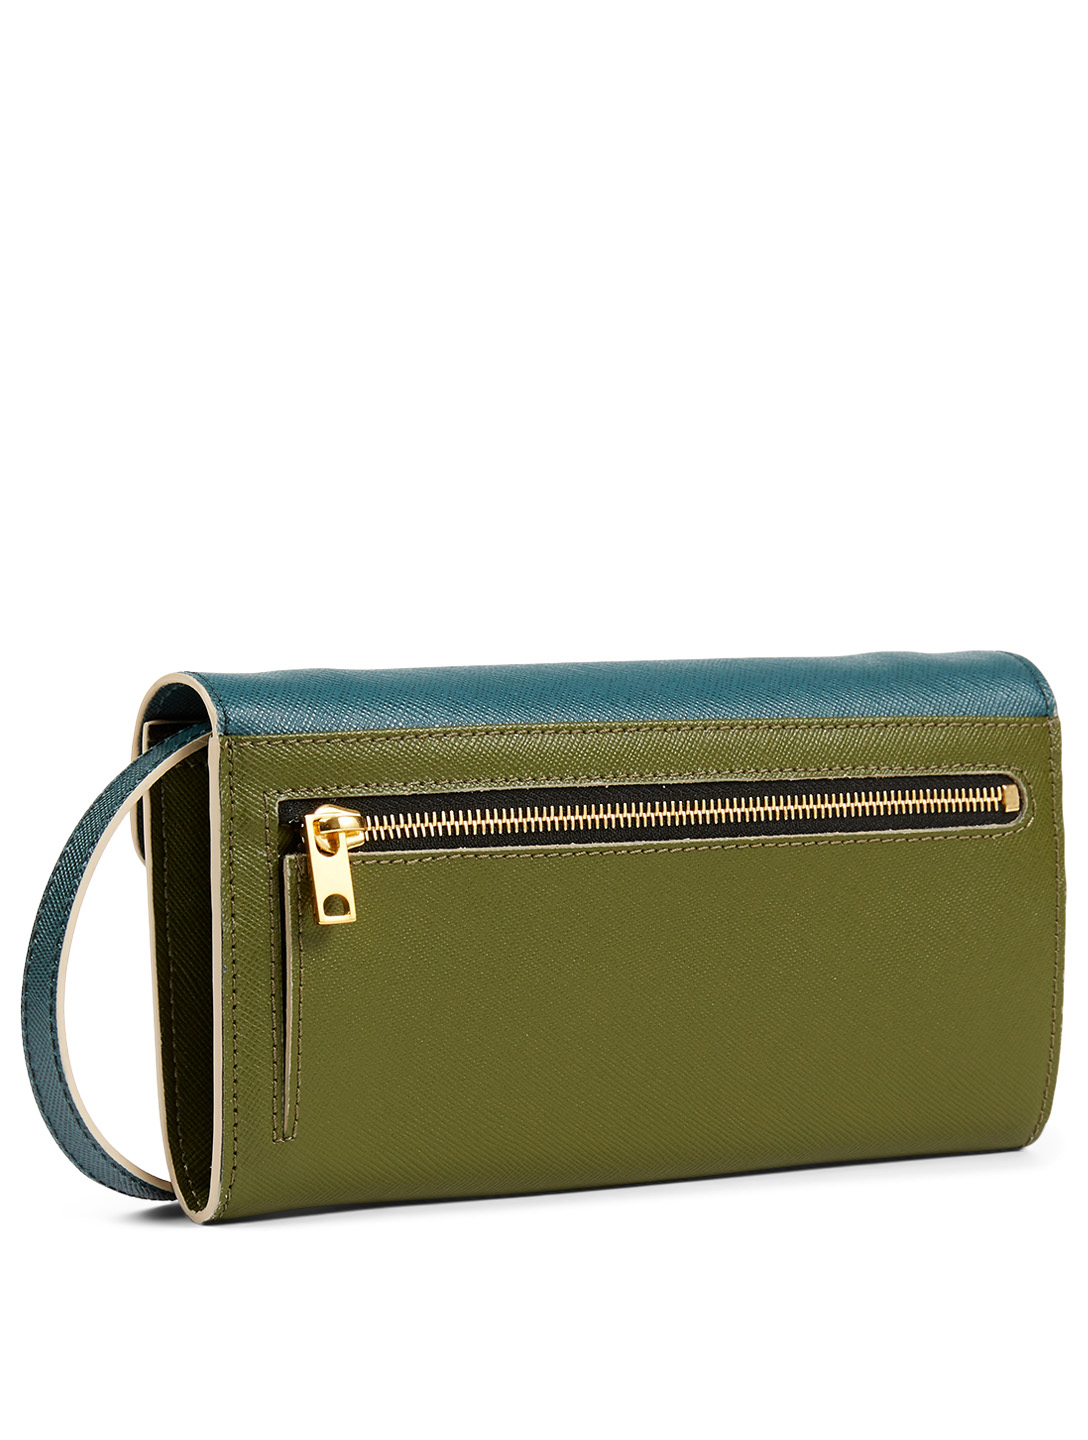 MARNI Trunk Chain Colourblock Leather Wallet Bag Women's Blue